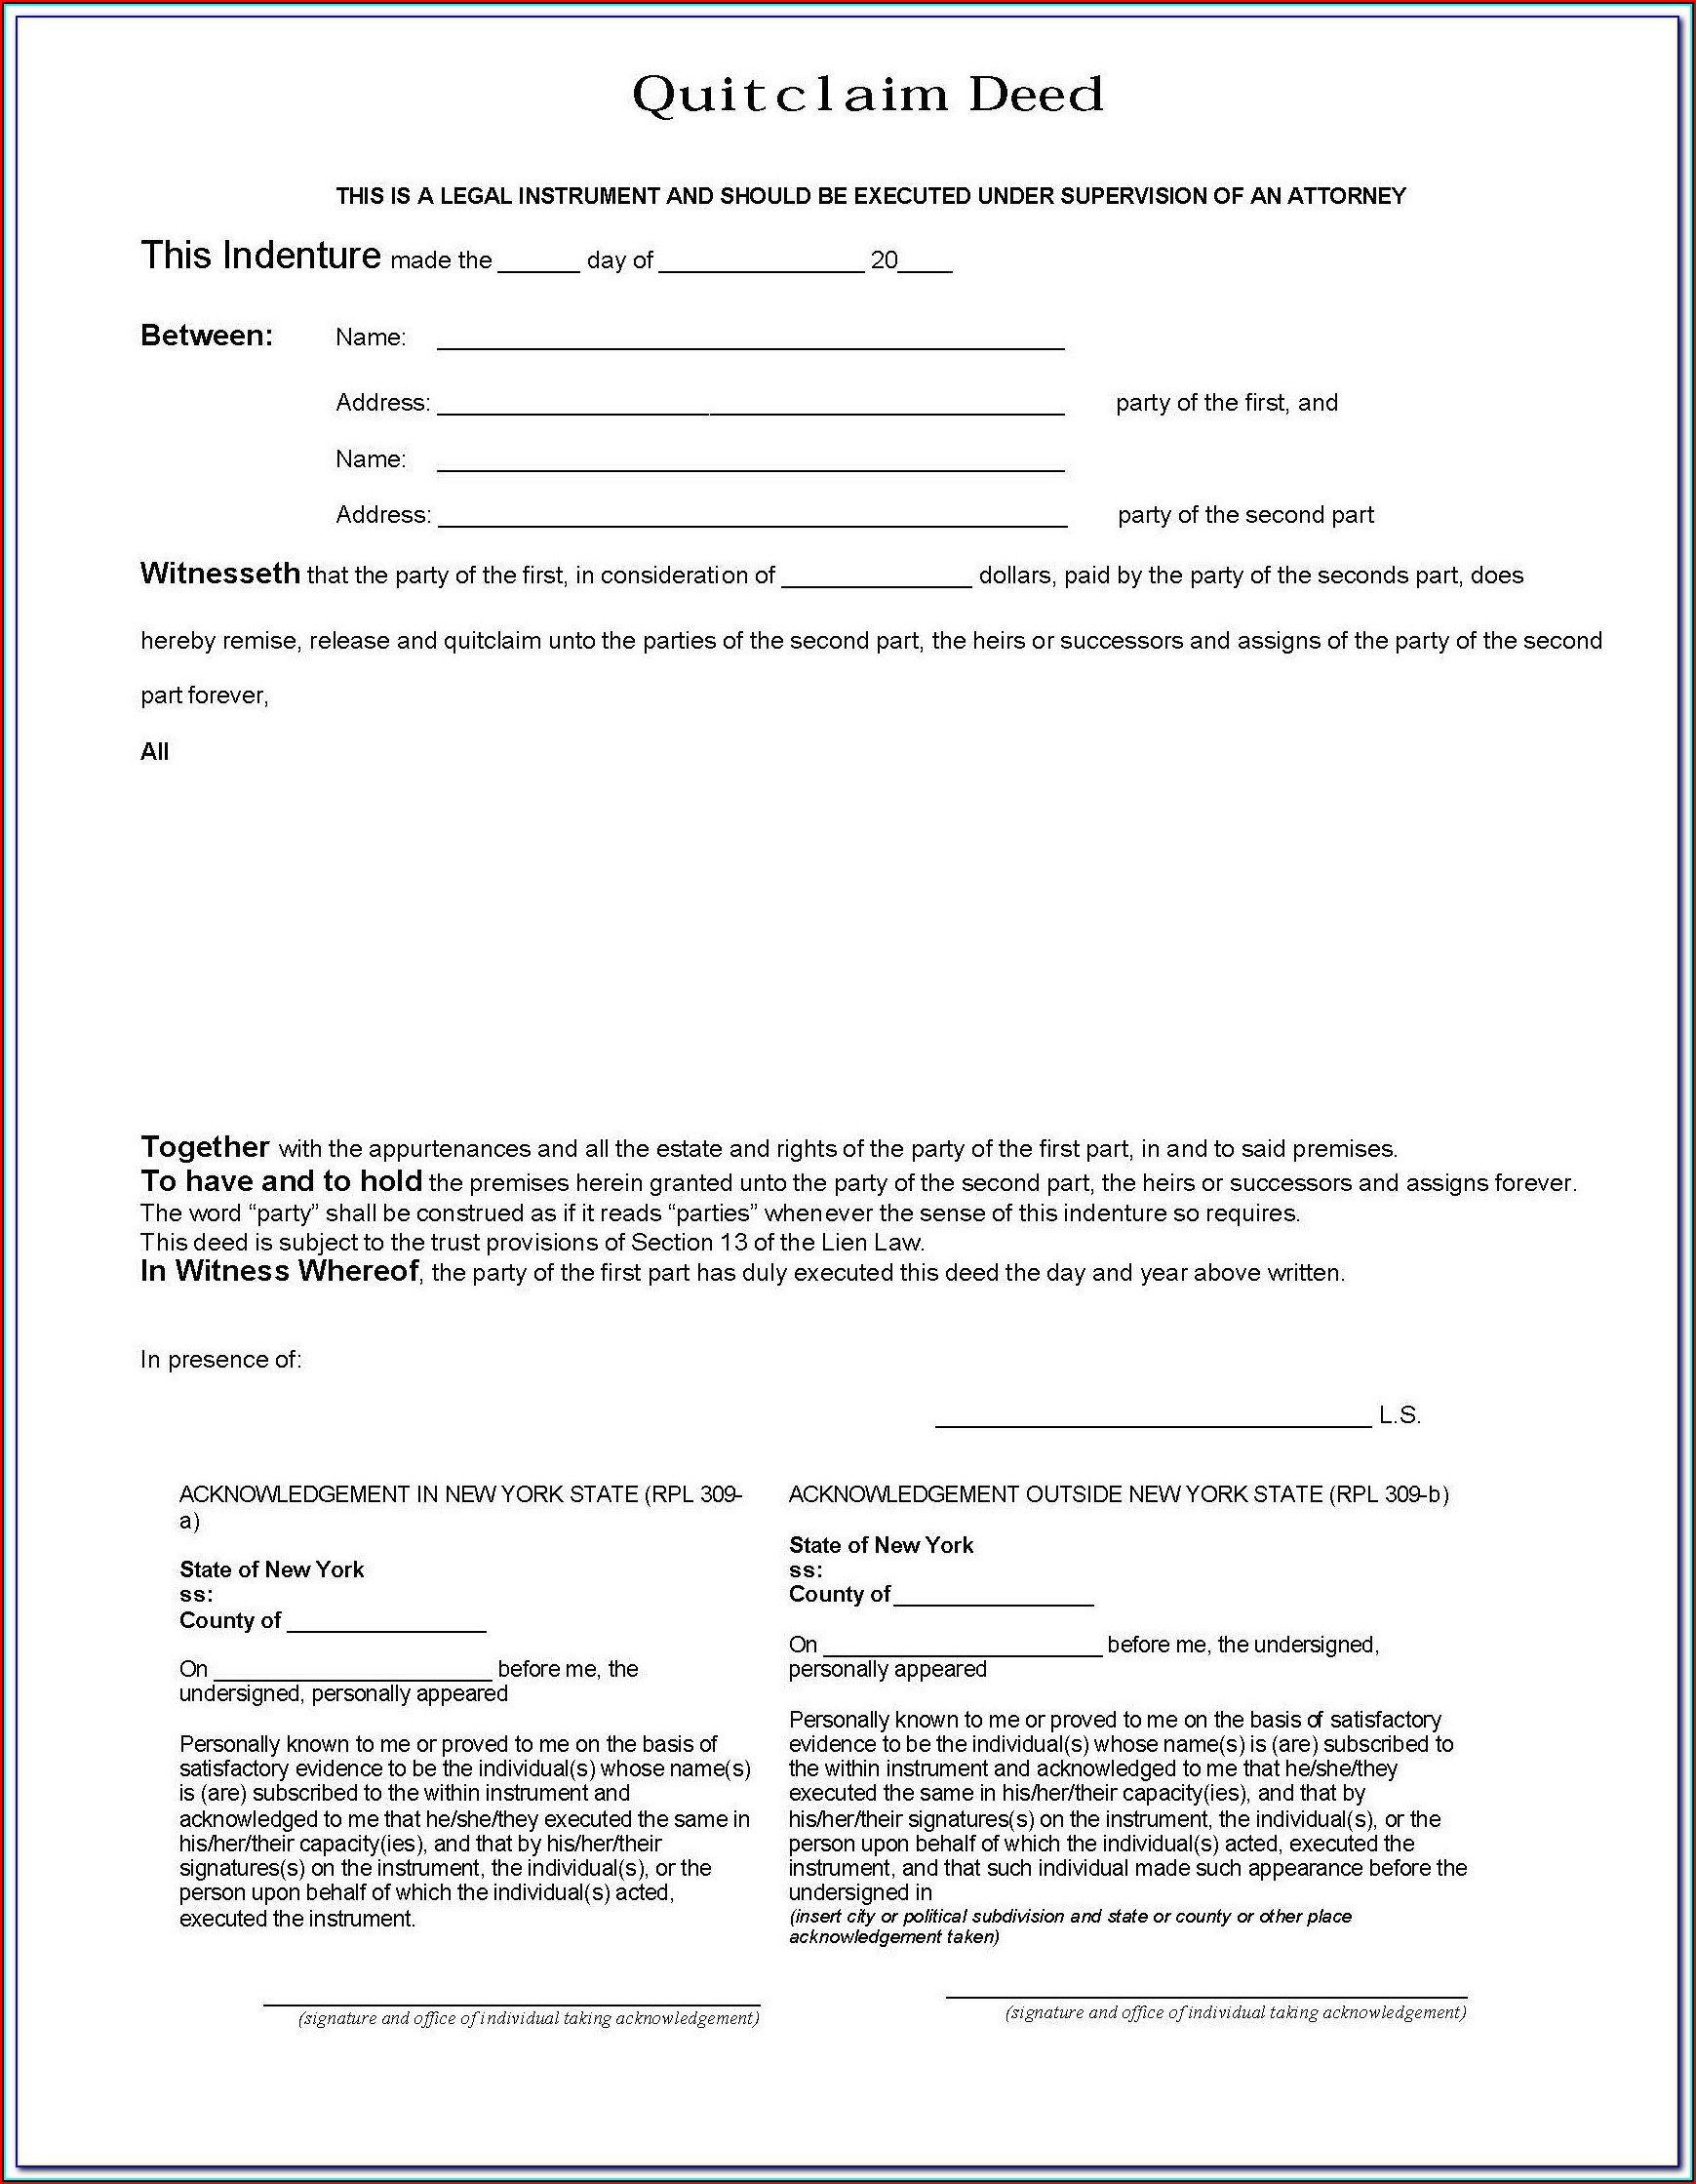 Blank Quit Claim Deed Form New York